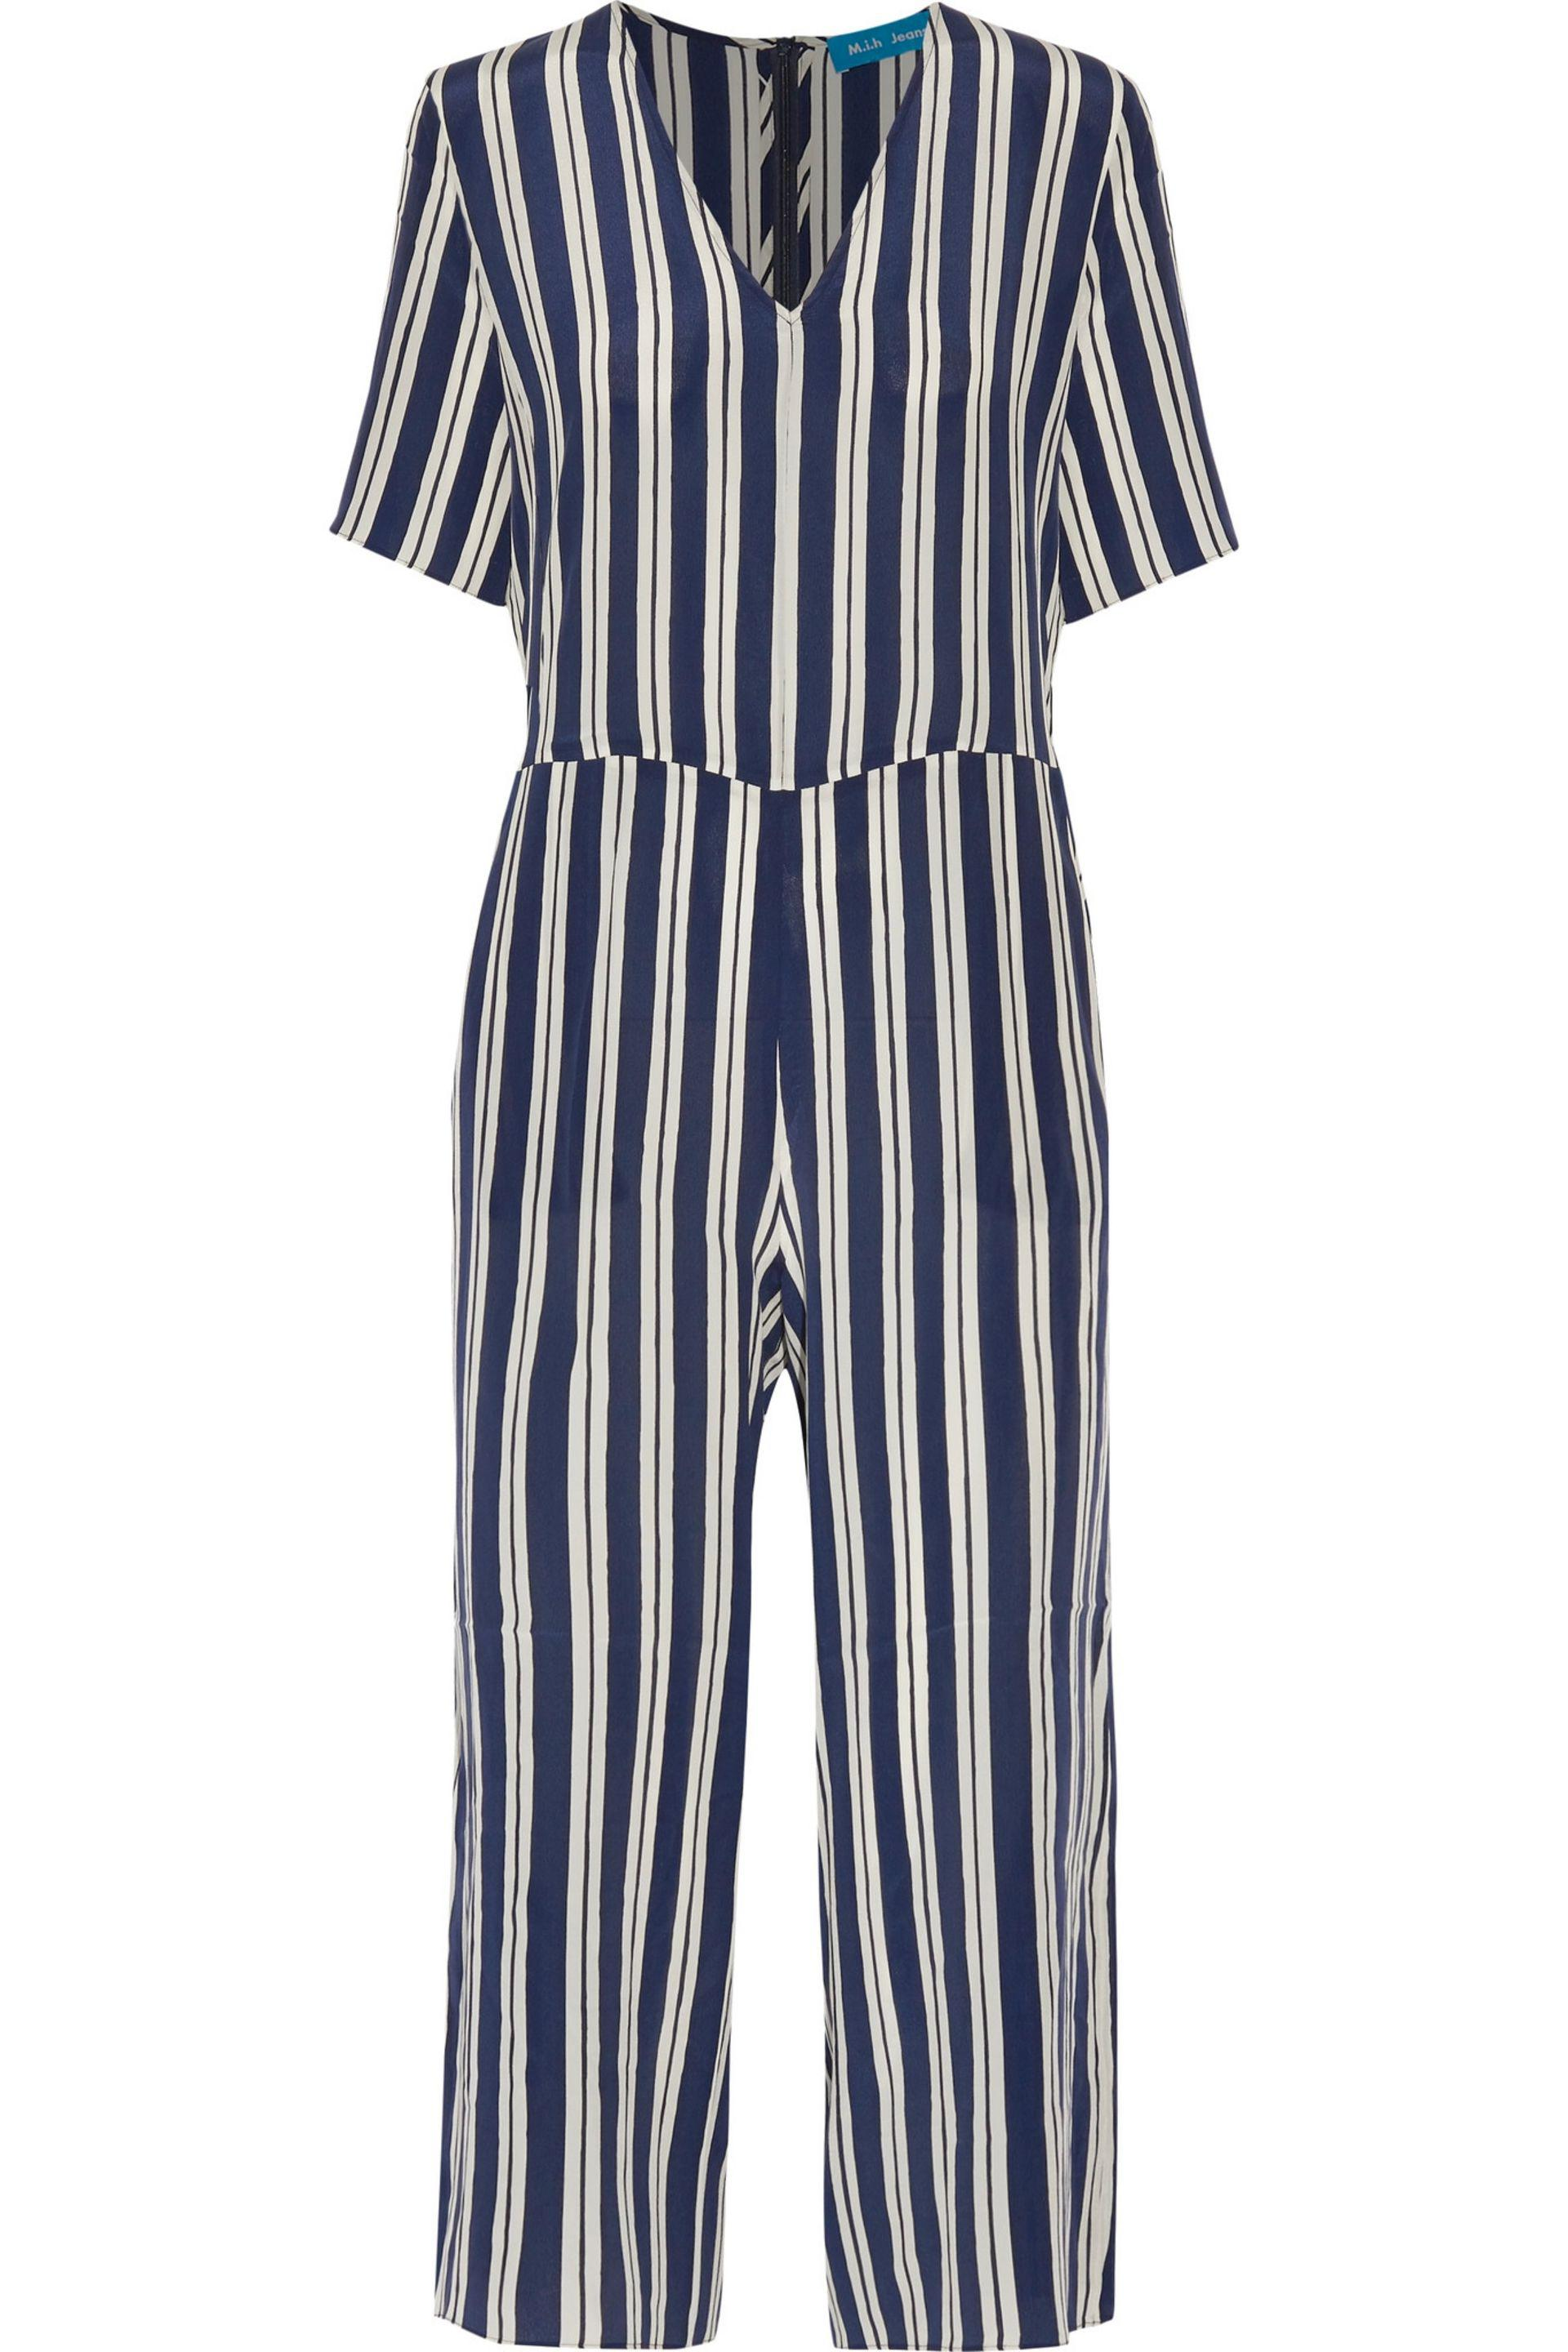 b9ac8994604 Lyst - M.i.h Jeans Hart Cropped Striped Silk Jumpsuit Midnight Blue ...